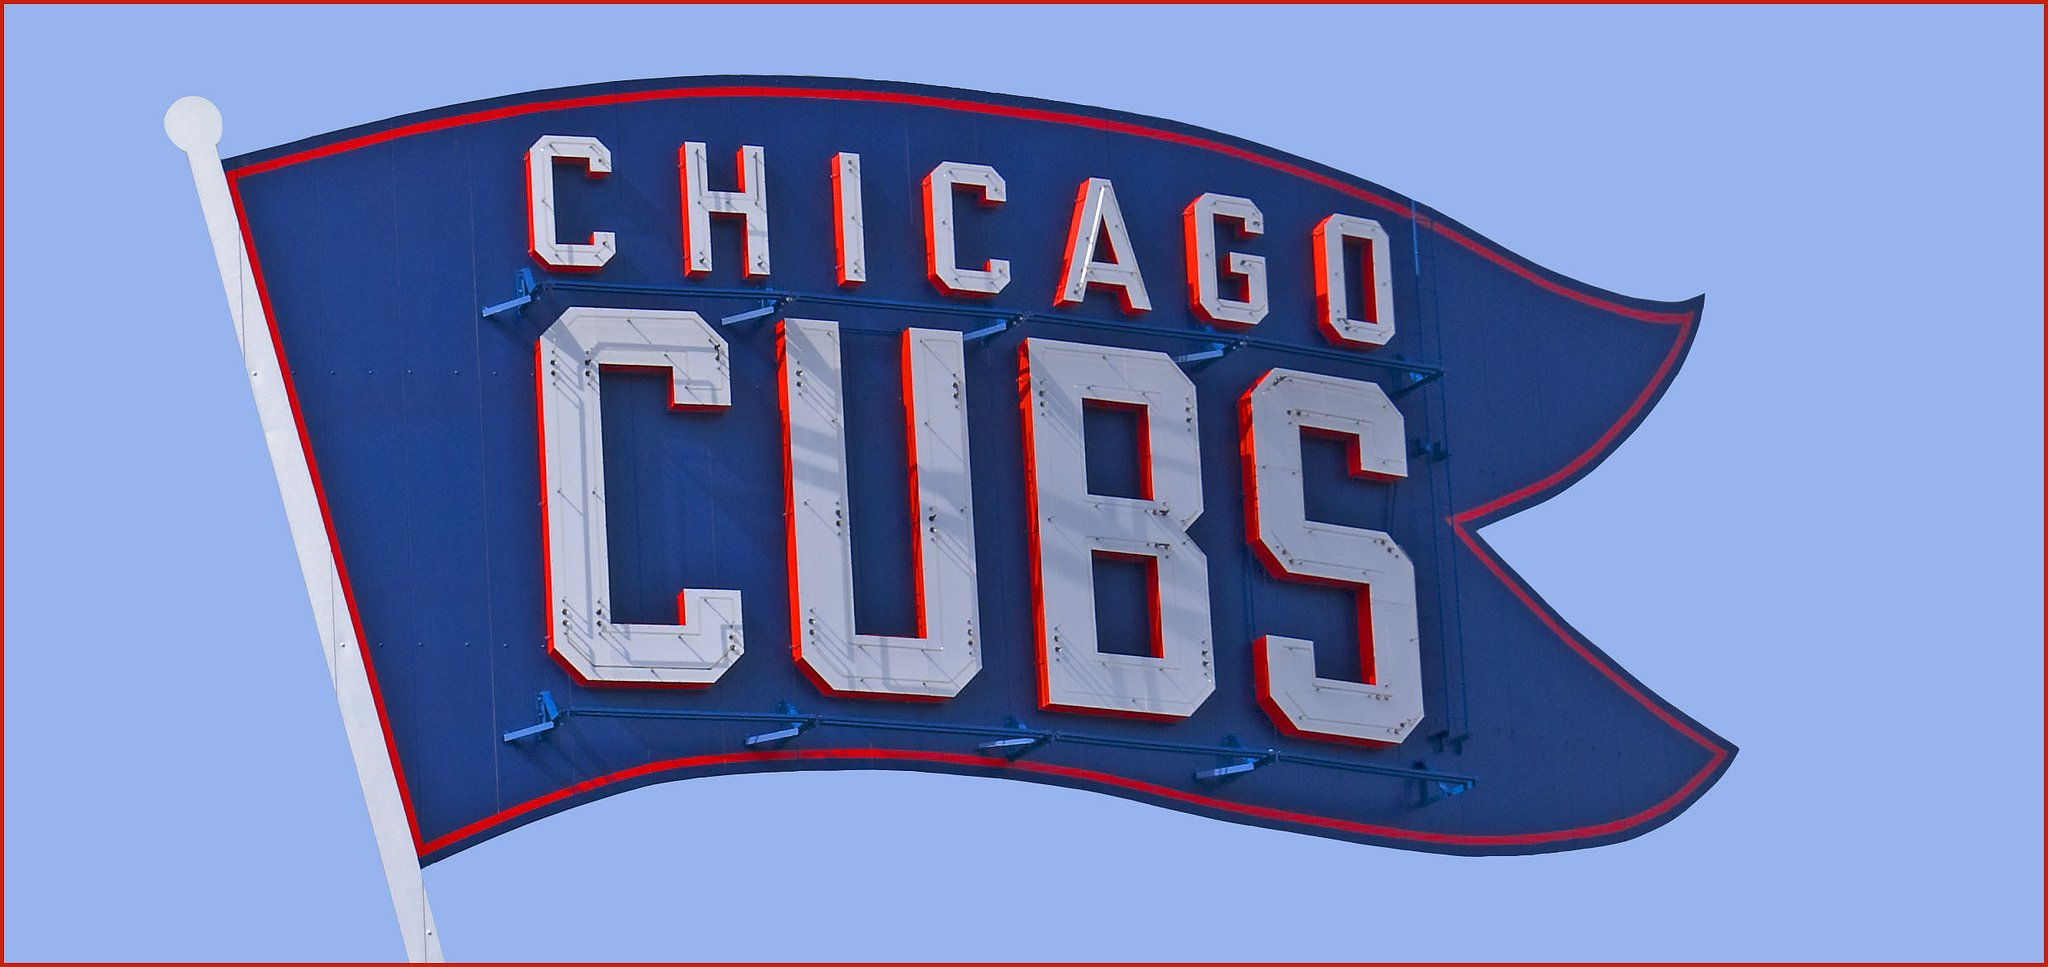 The Carnival - Chicago Cubs